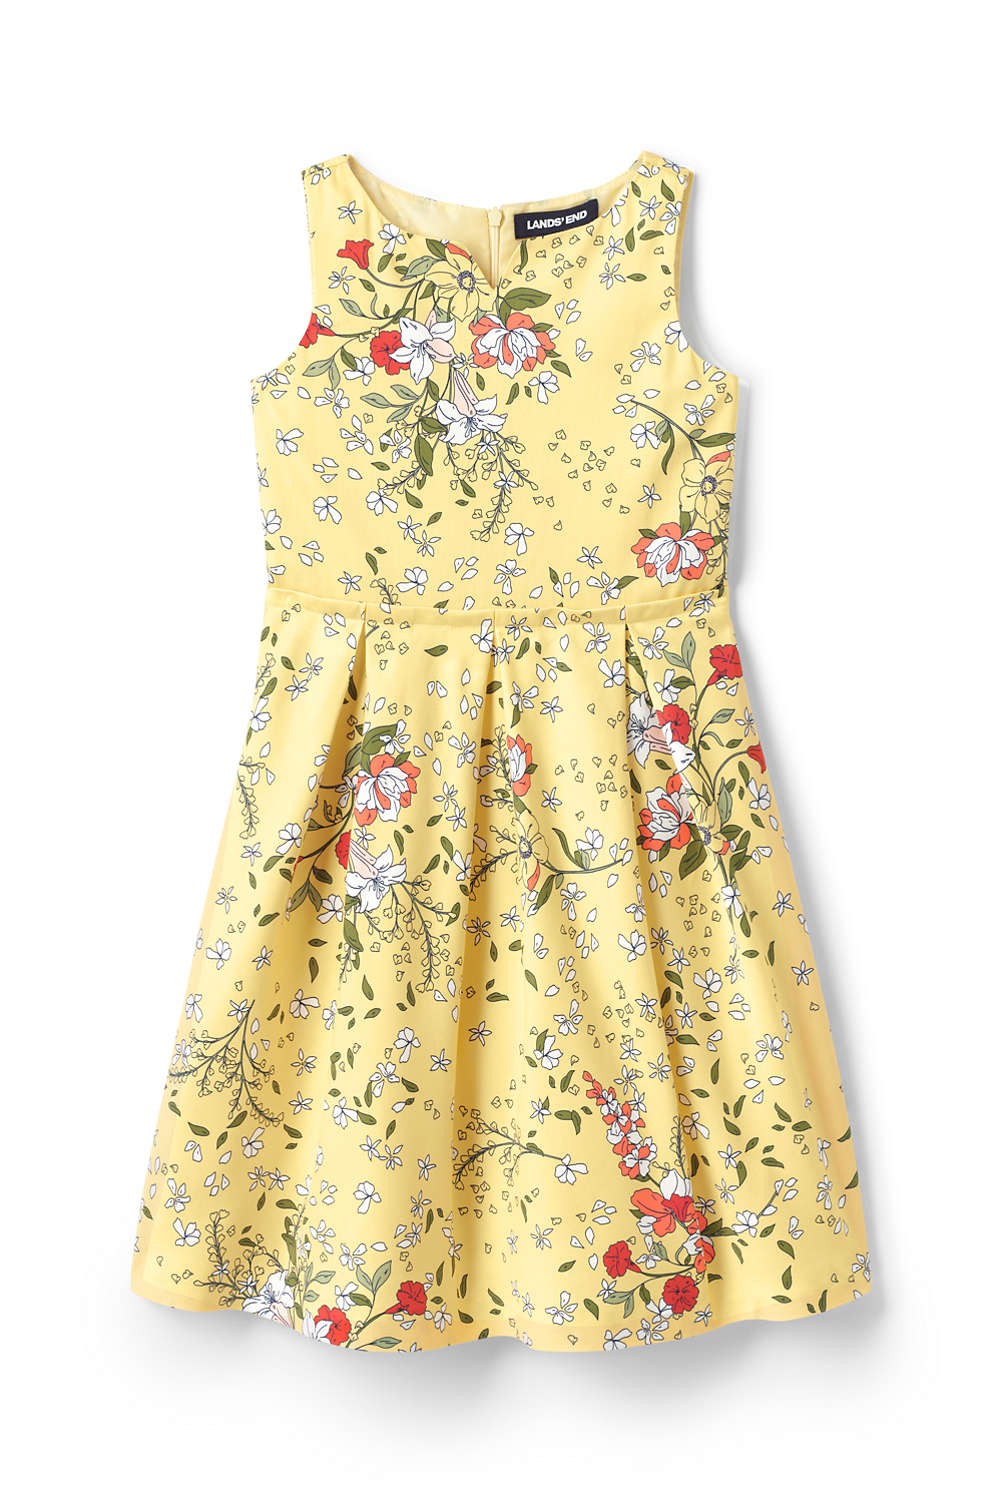 83388ae88 Girls Easter Dress from Lands' End